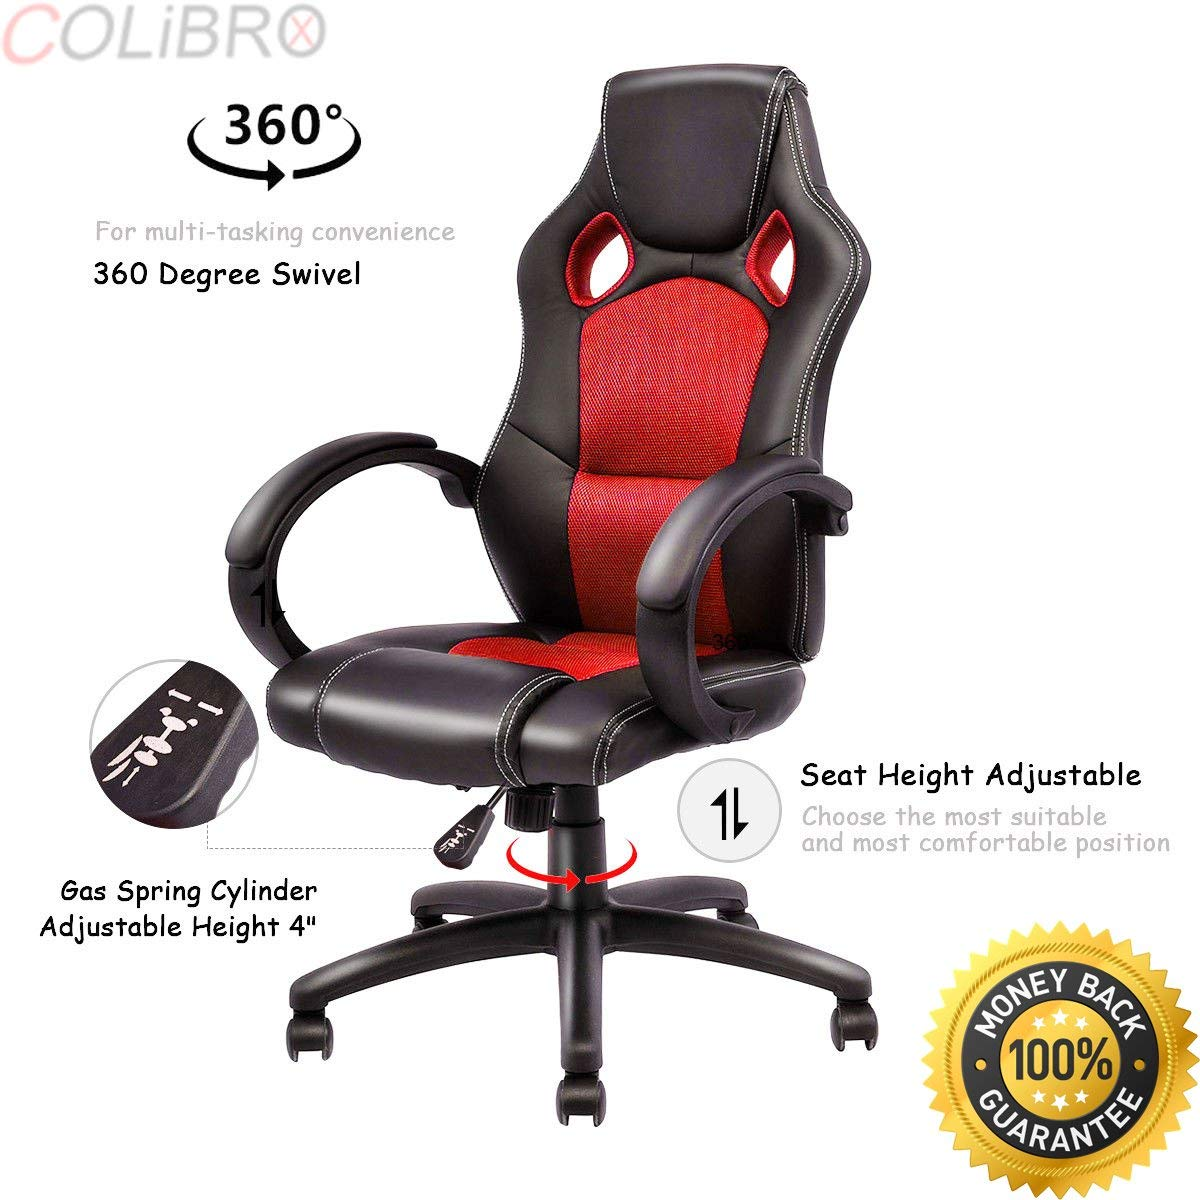 COLIBROX--High Back Racing Chair Bucket Seat Office Desk Gaming Chair Swivel Executive New. new high back racing car style bucket seat office desk chair gaming chair.bucket seat gaming chair.